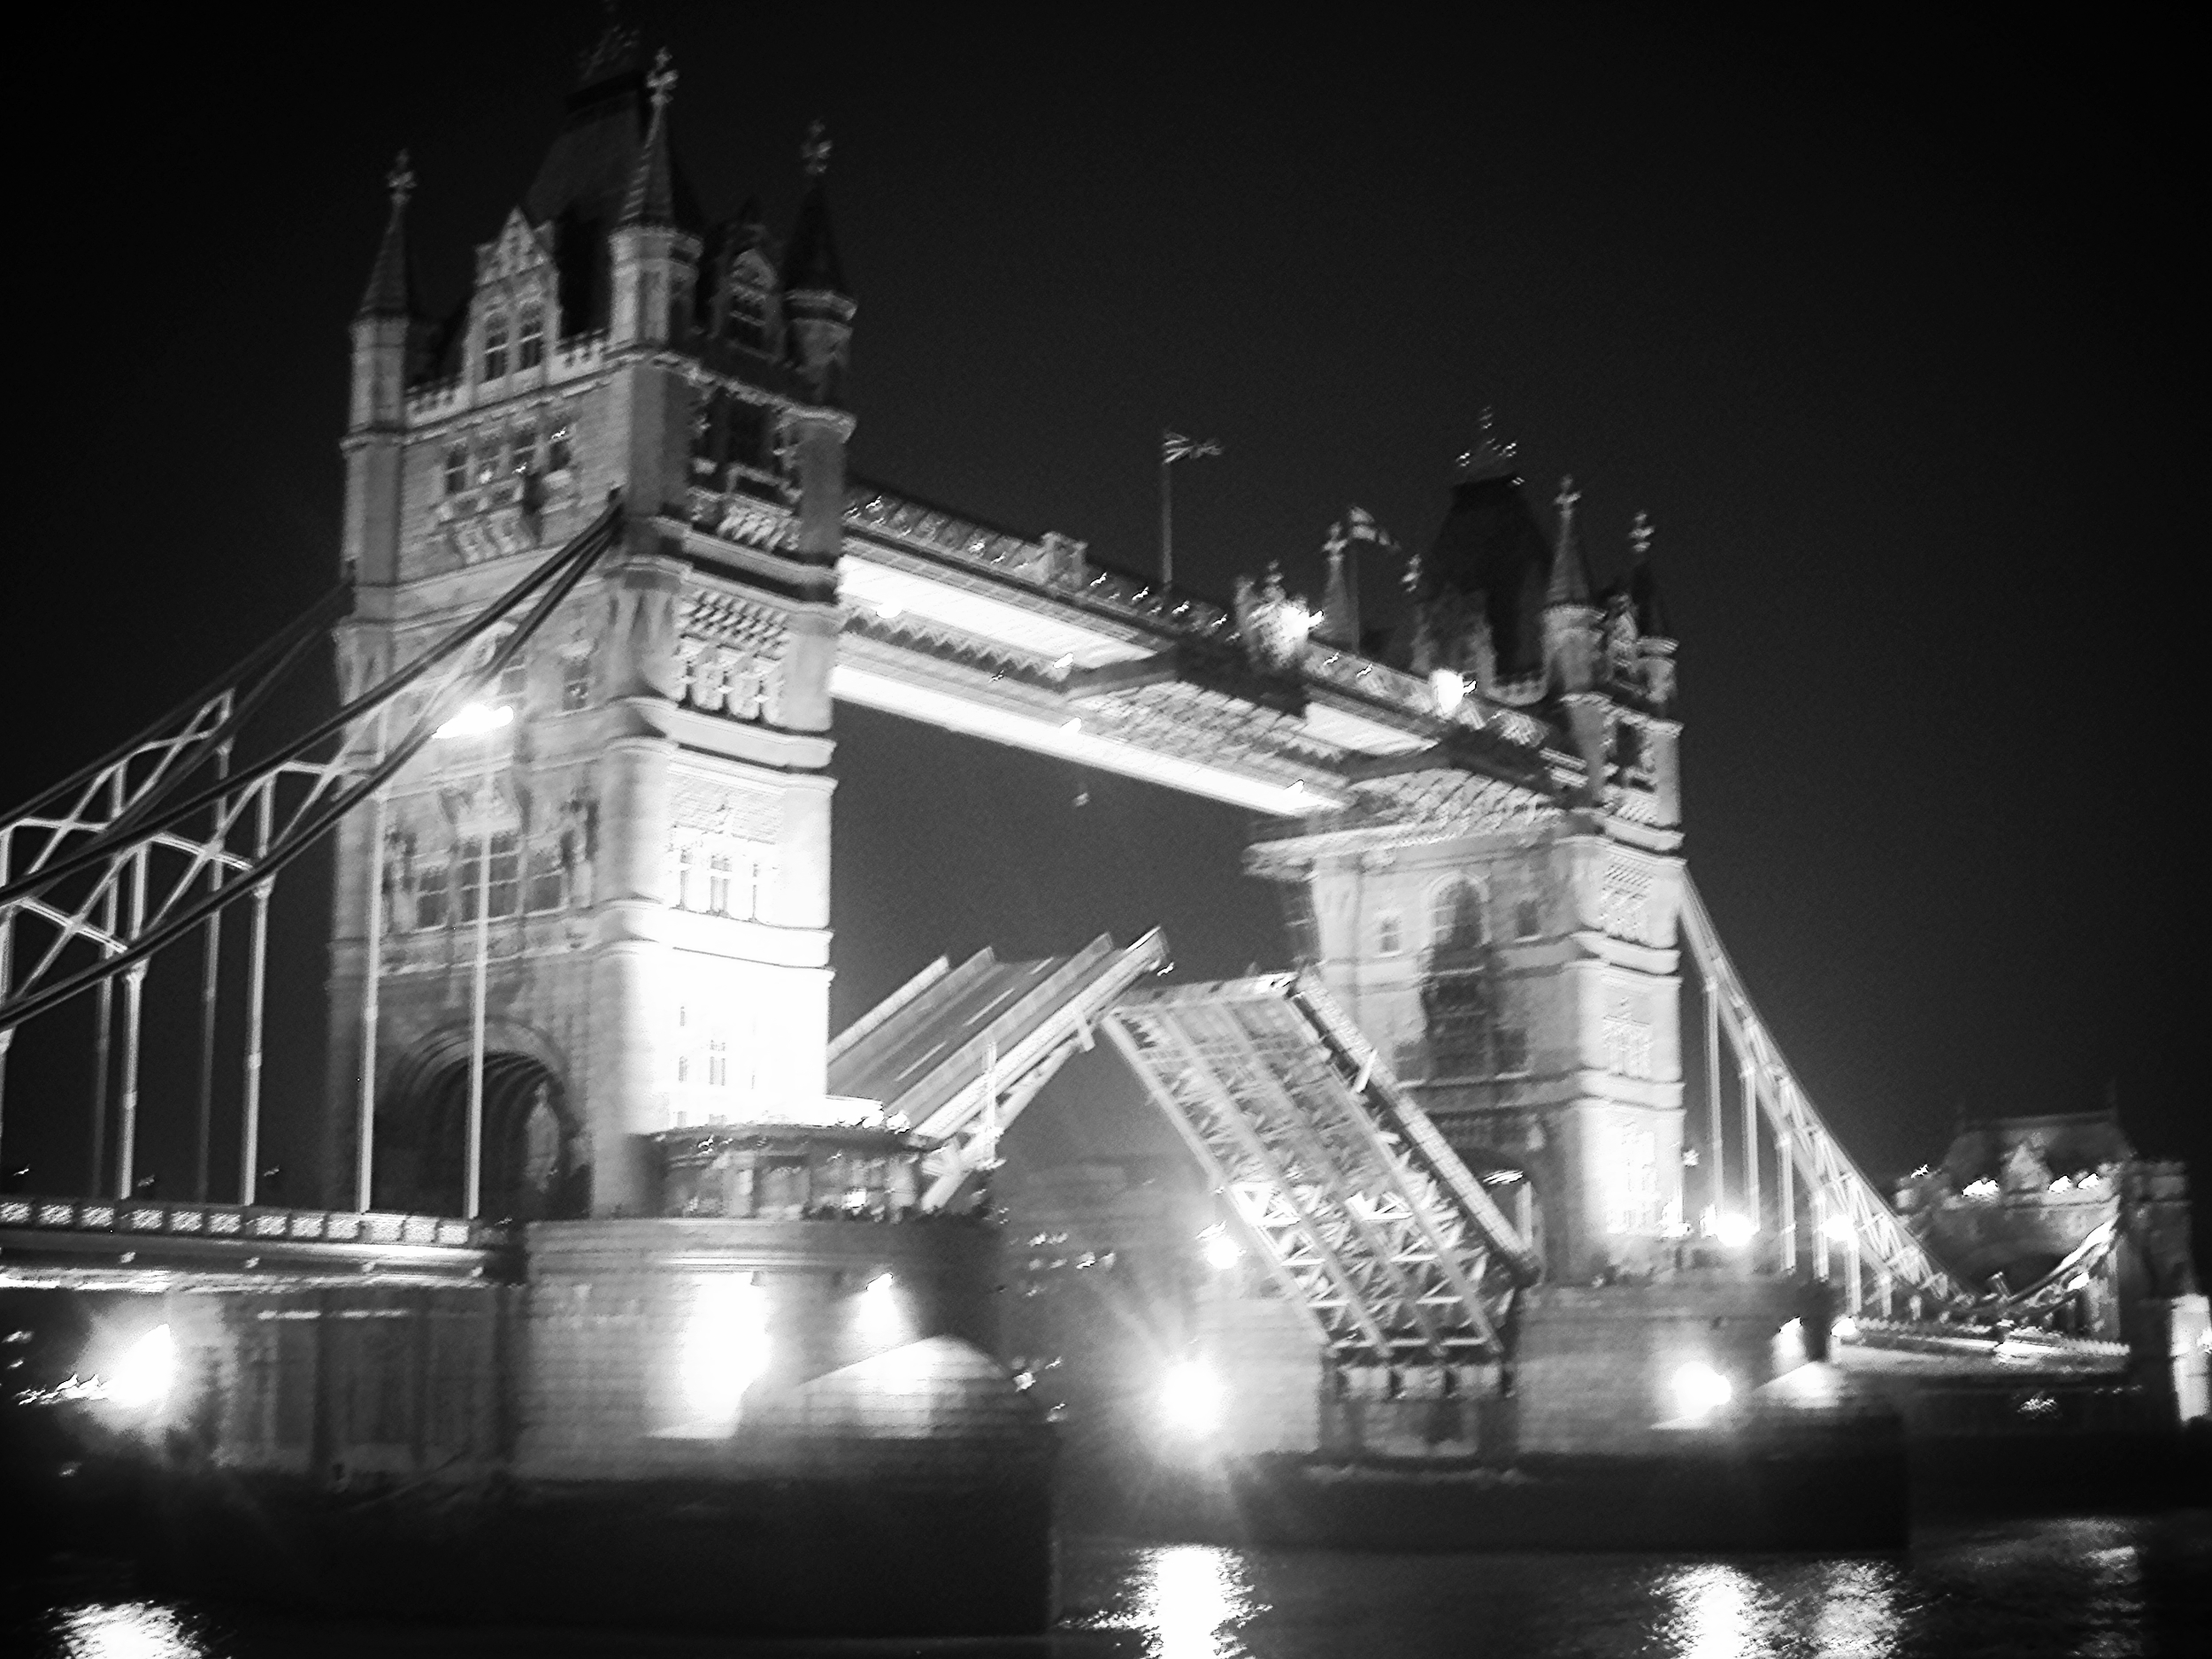 Welcome to london! you might be murdered but check out this cool bridge!